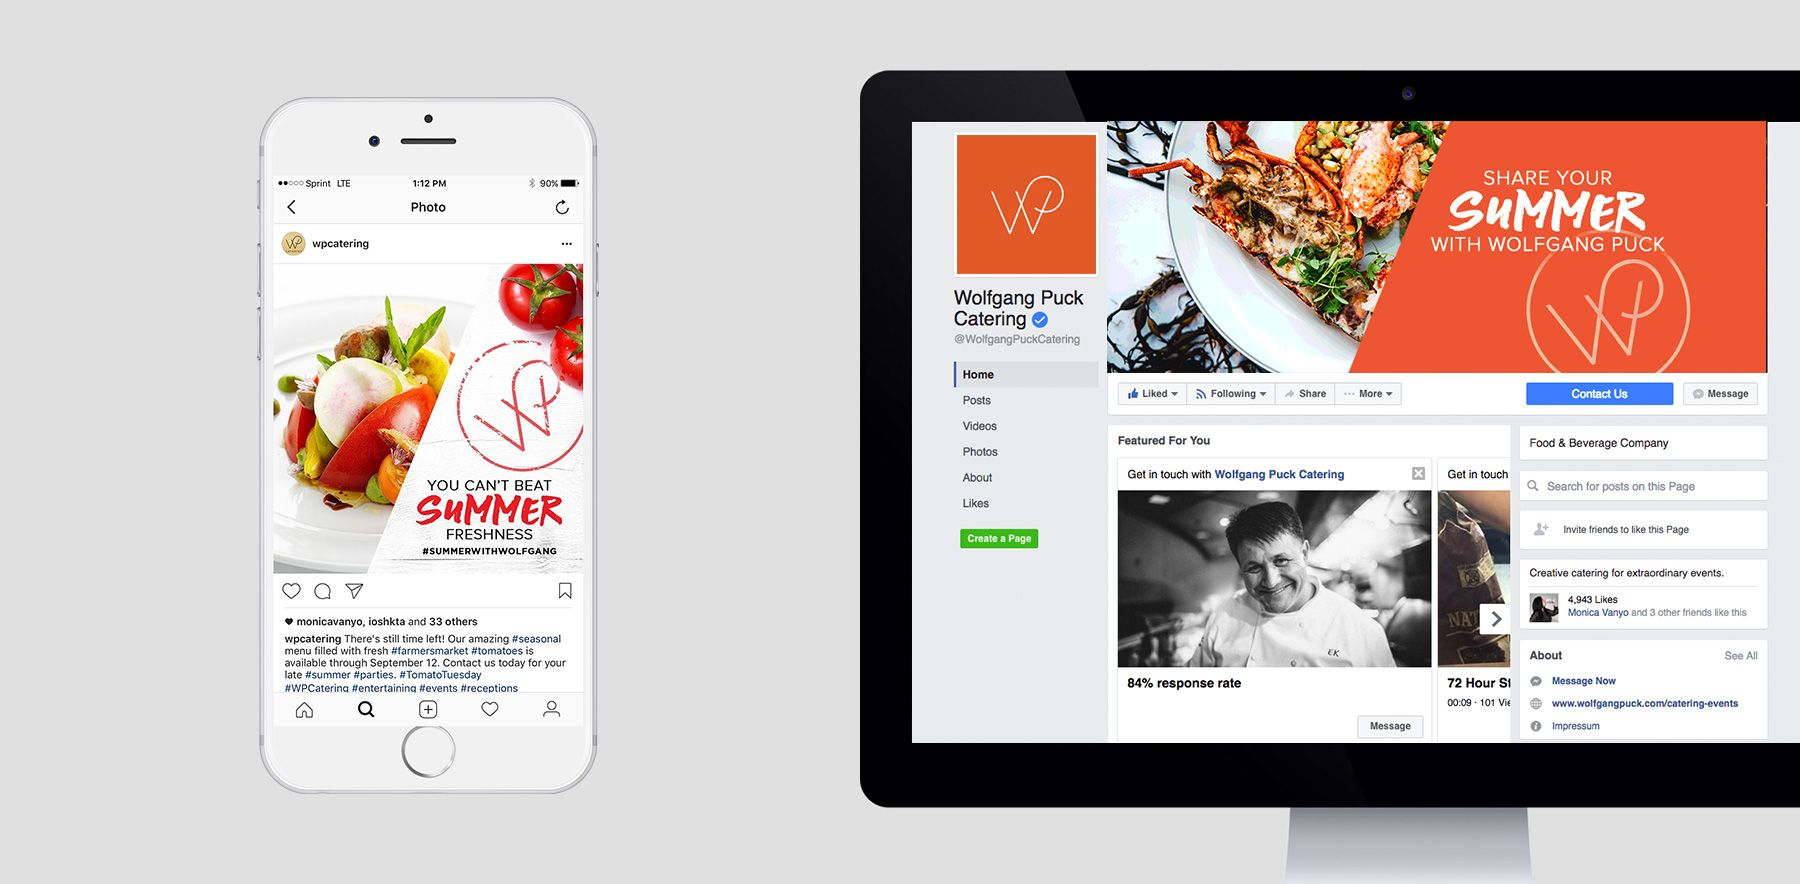 Mobile and desktop view of Wolfgang Puck social media